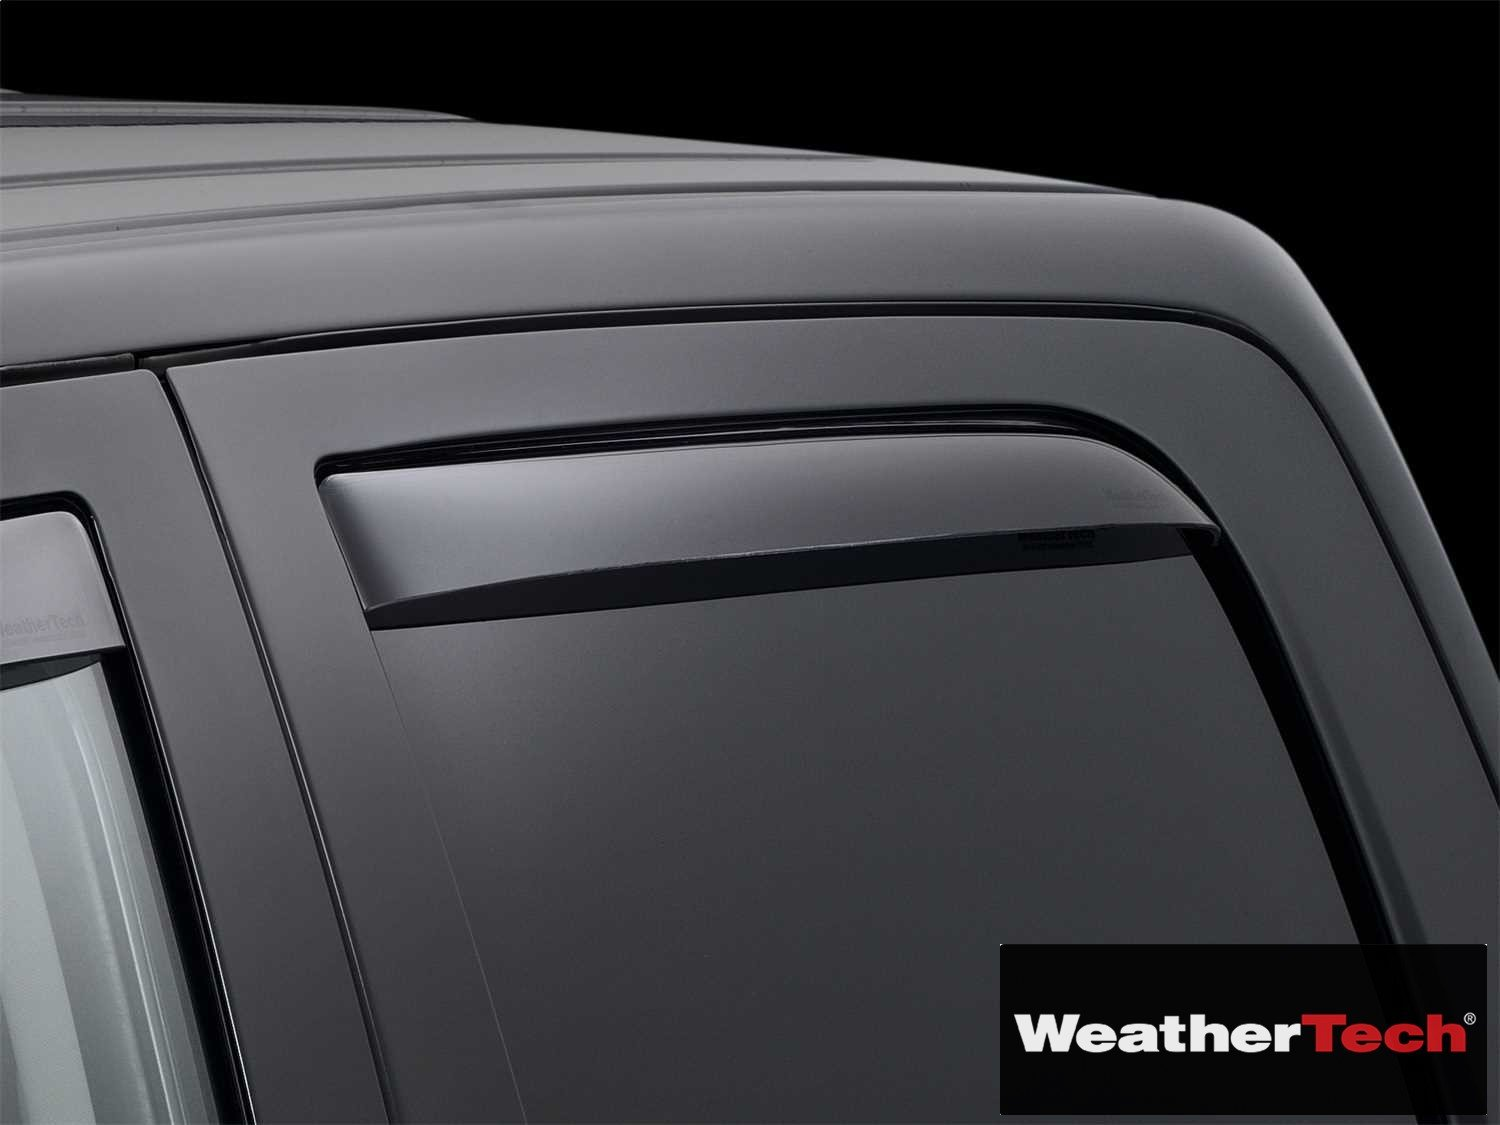 Side Window Deflector Visor Rainguard Rear Dark Tint Rear Only Fits Weathertech fits Ram 1500 Crew Cab 11 12 13 14 15 16 17 18 WEA109741-HR 2011 2012 2013 2014 2015 2016 2017 2018